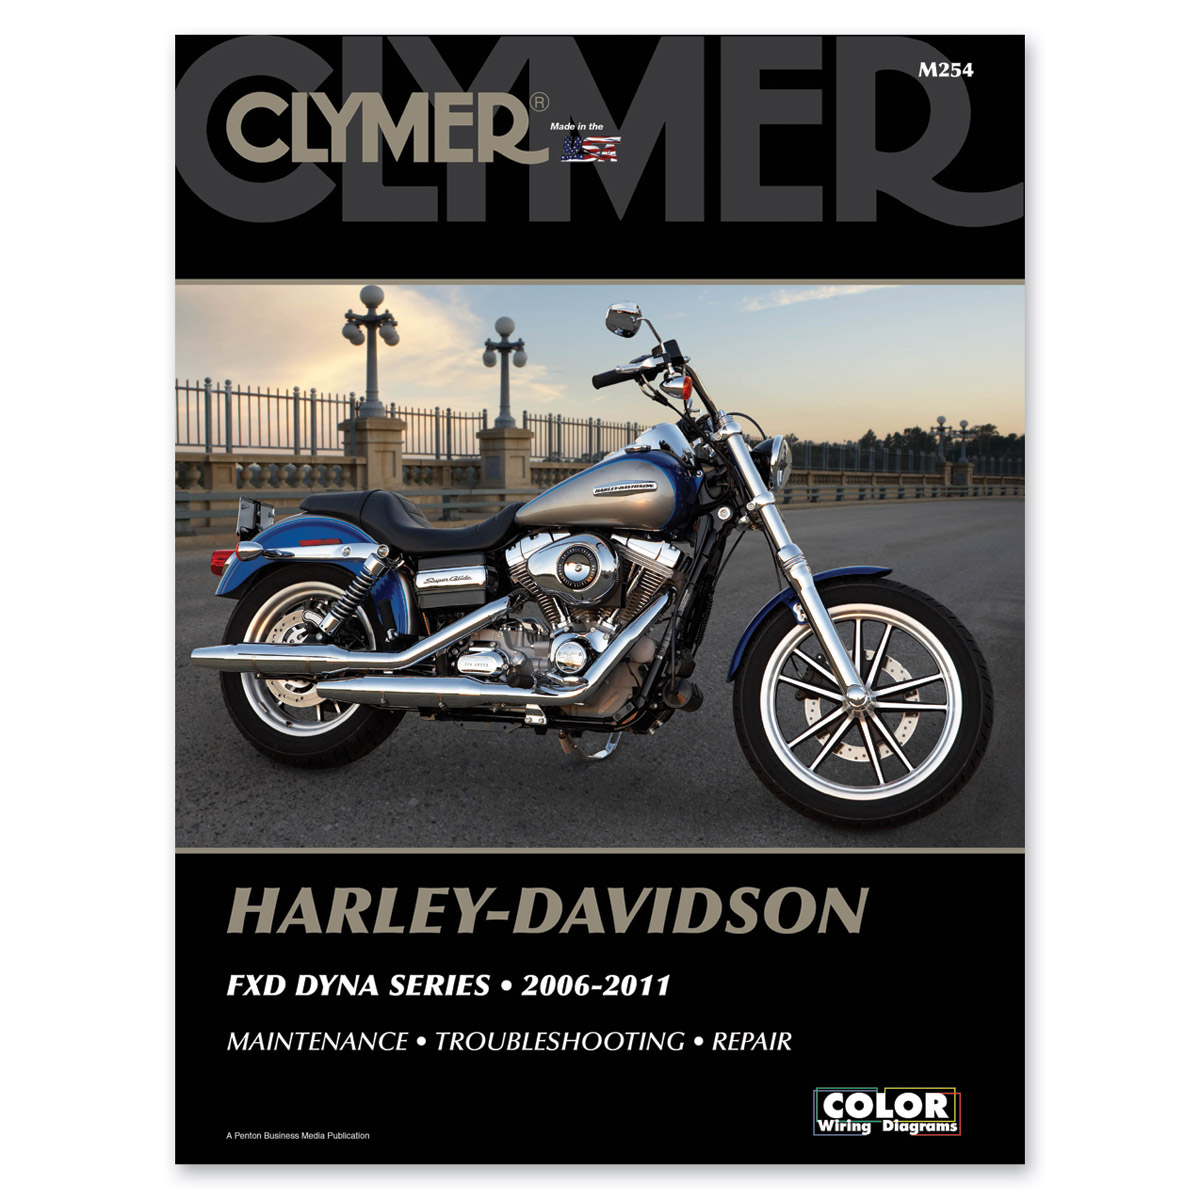 Clymer 2006-11 FXD Dyna Models Repair Manual